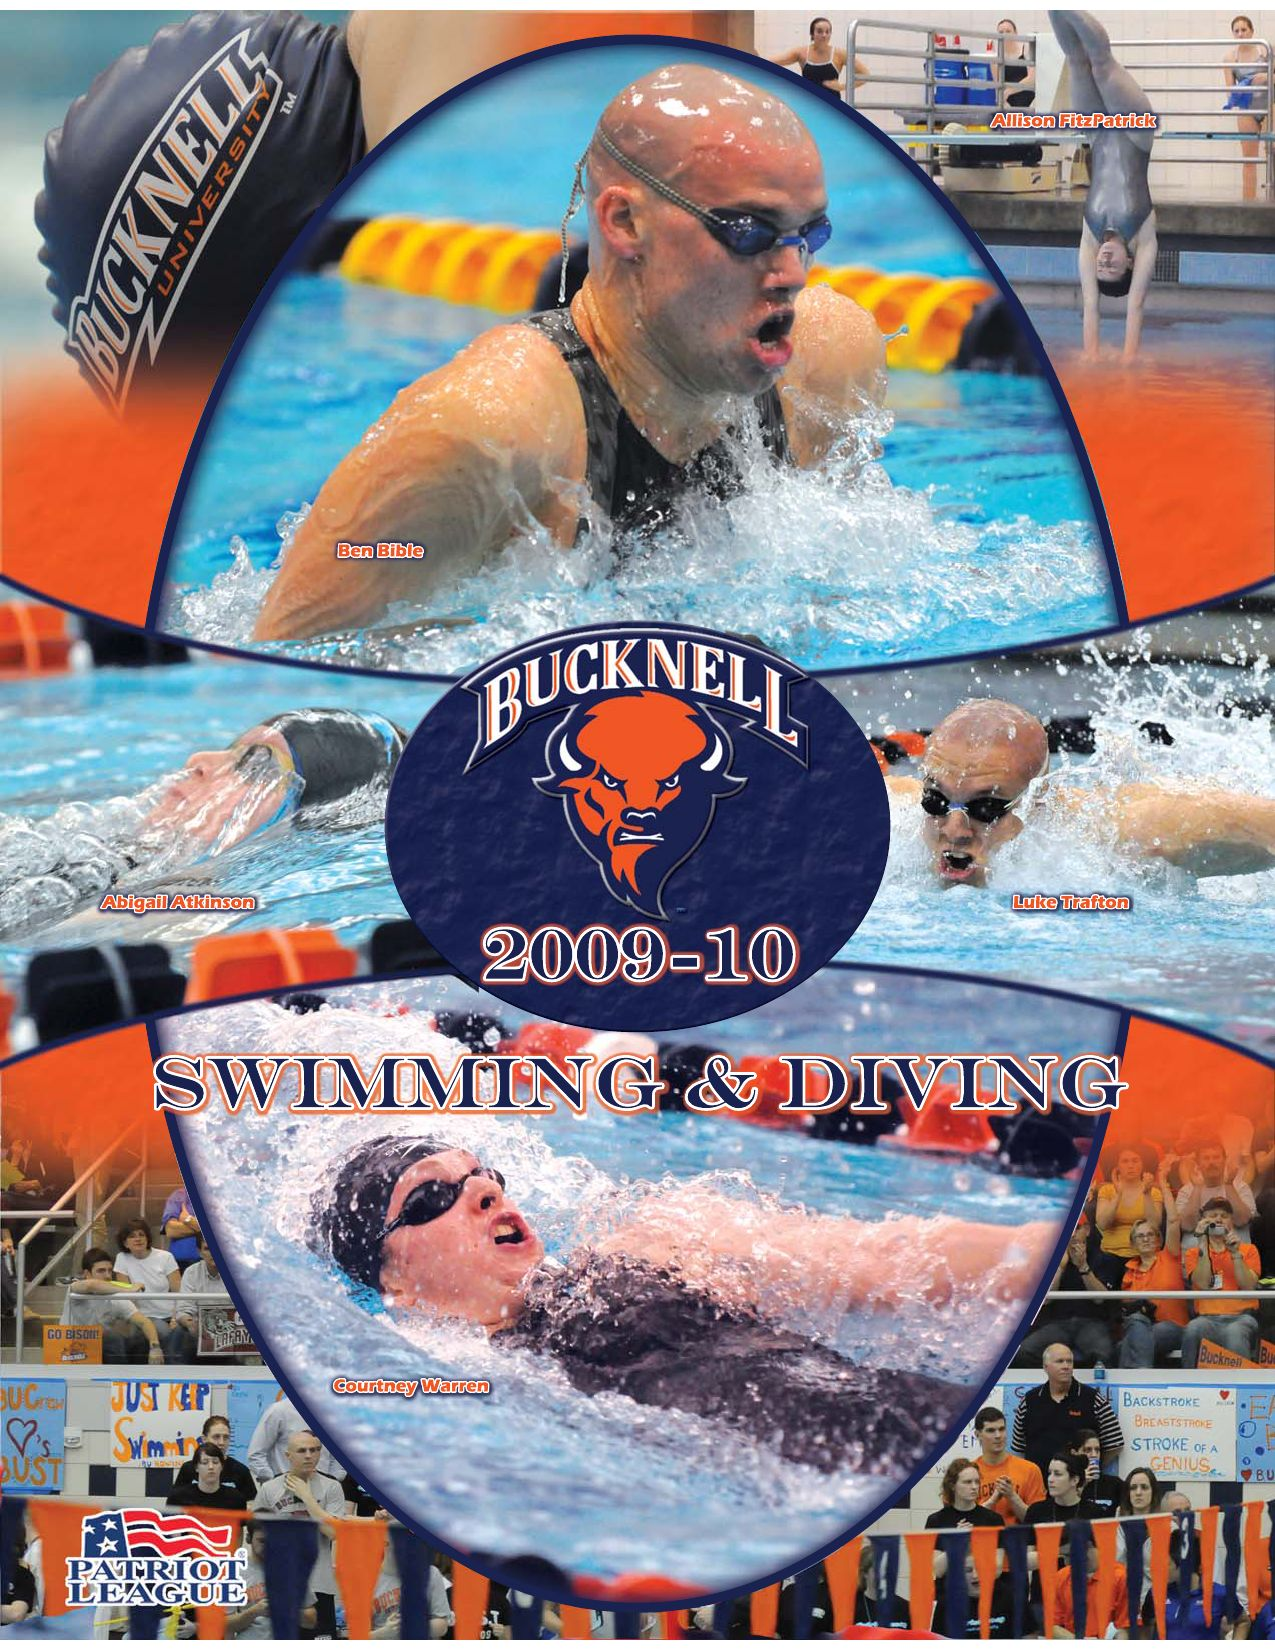 Gay in can cun